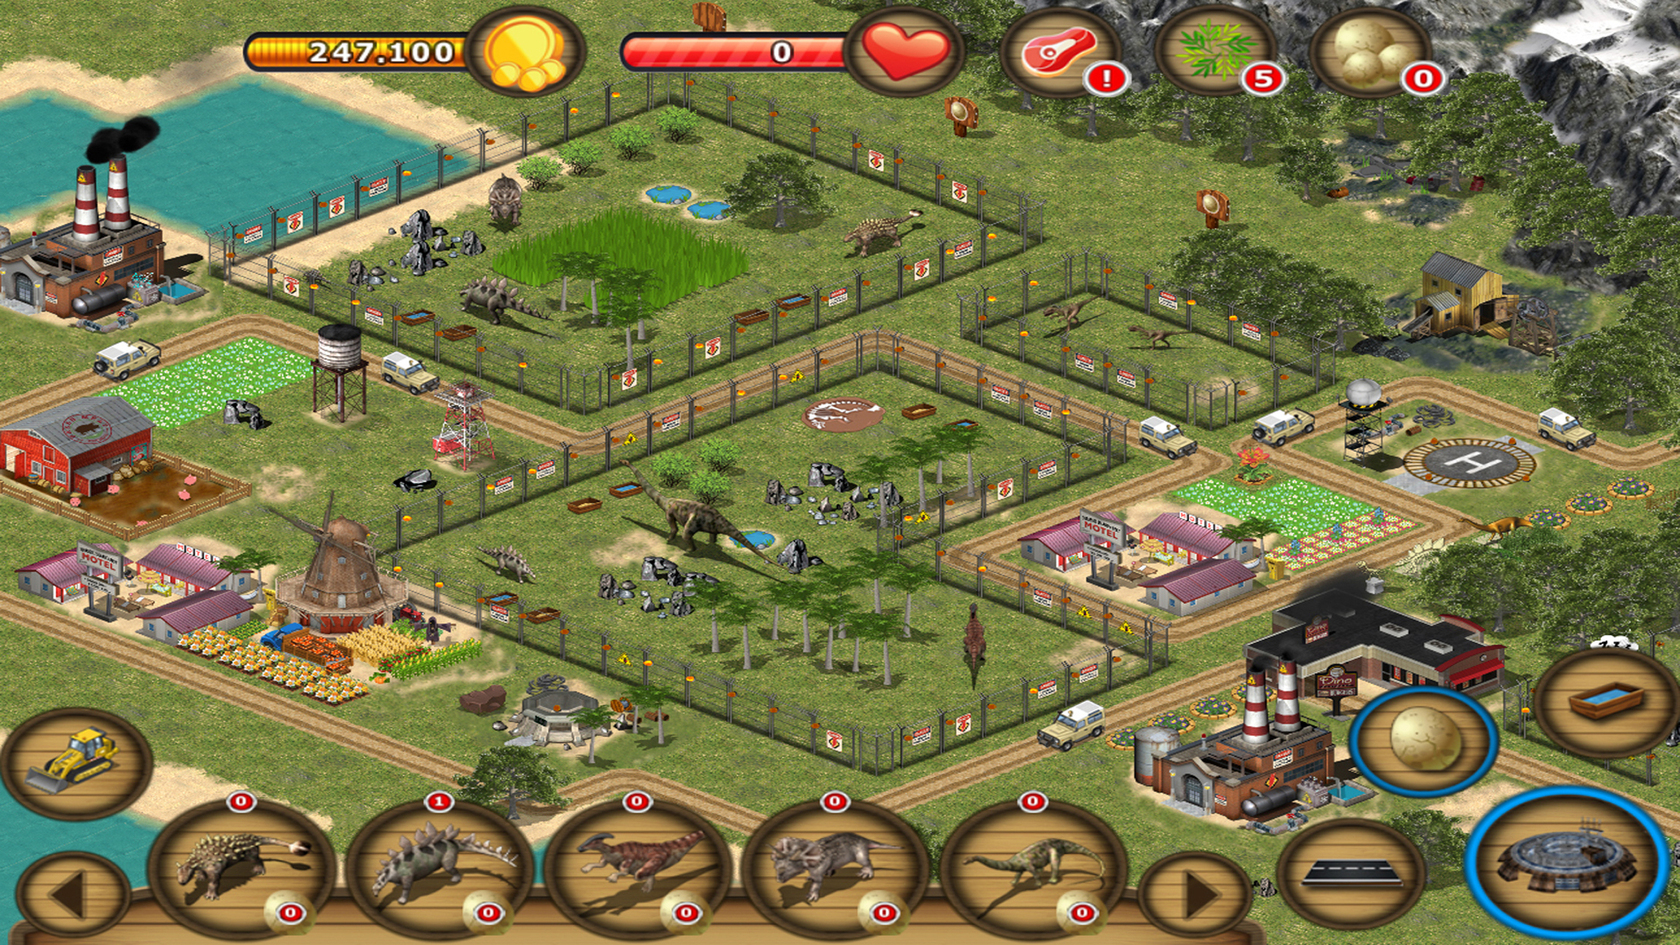 Jurassic Park Game Online Pc